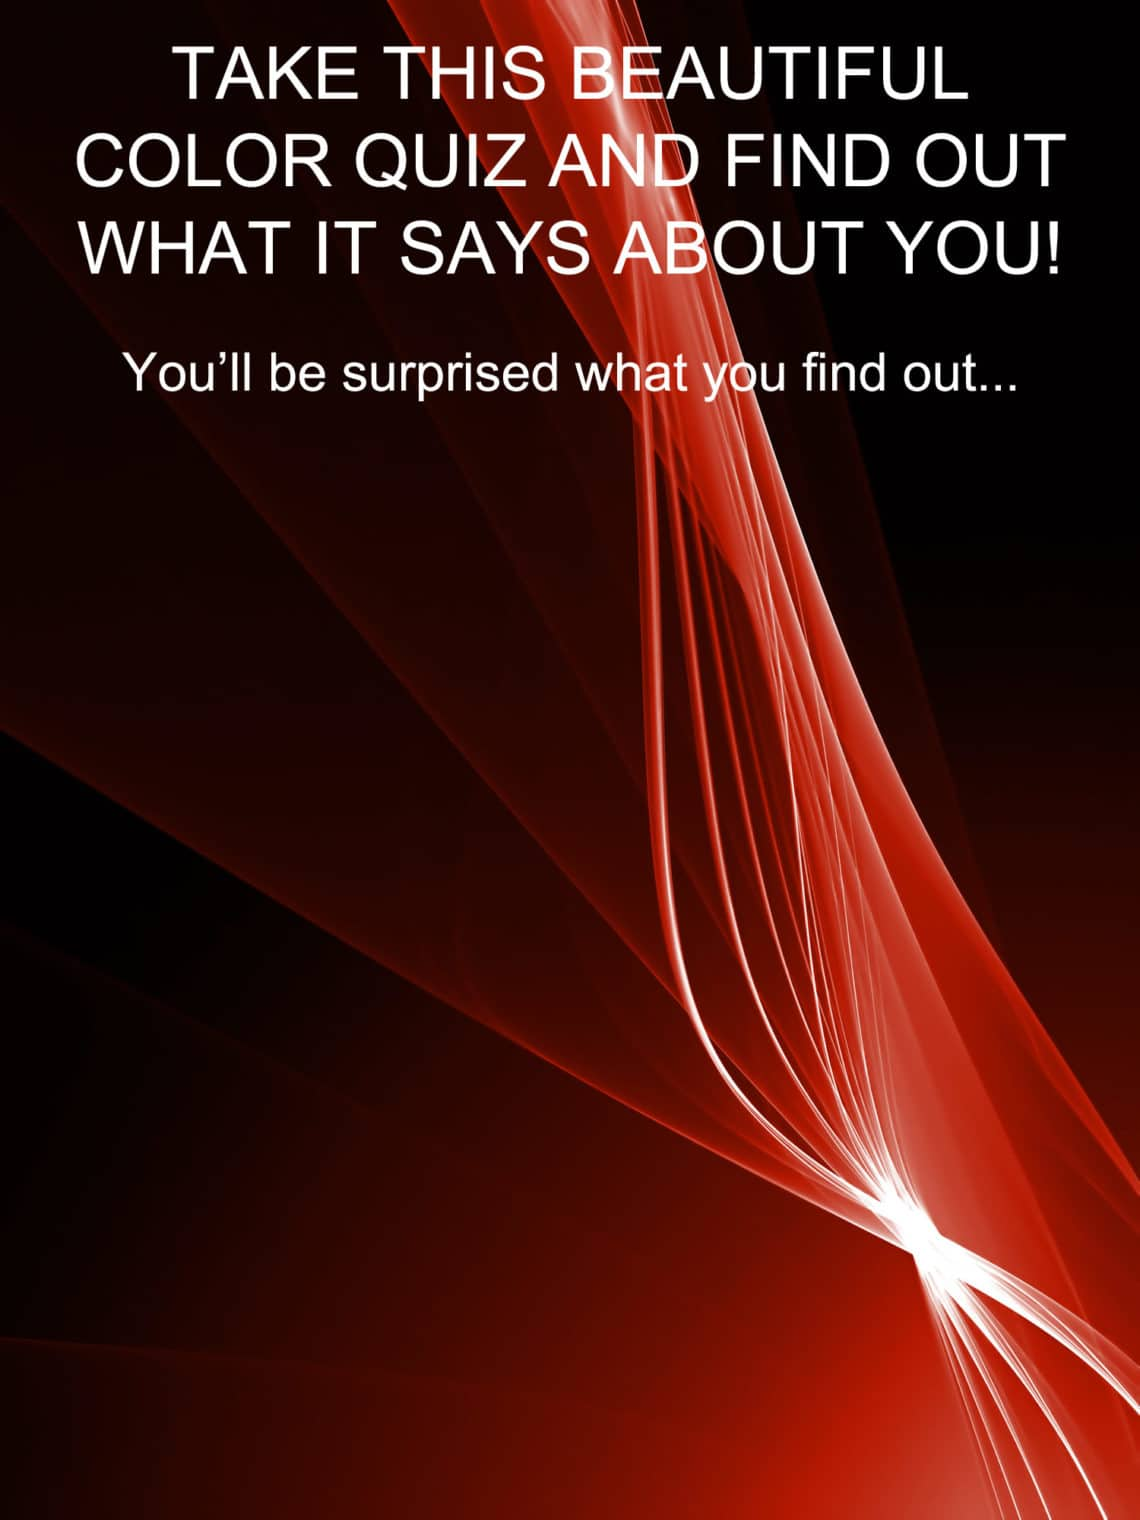 Take this beautiful color quiz and find out what is says about you.  You'll be surprised with what you find out about yourself...